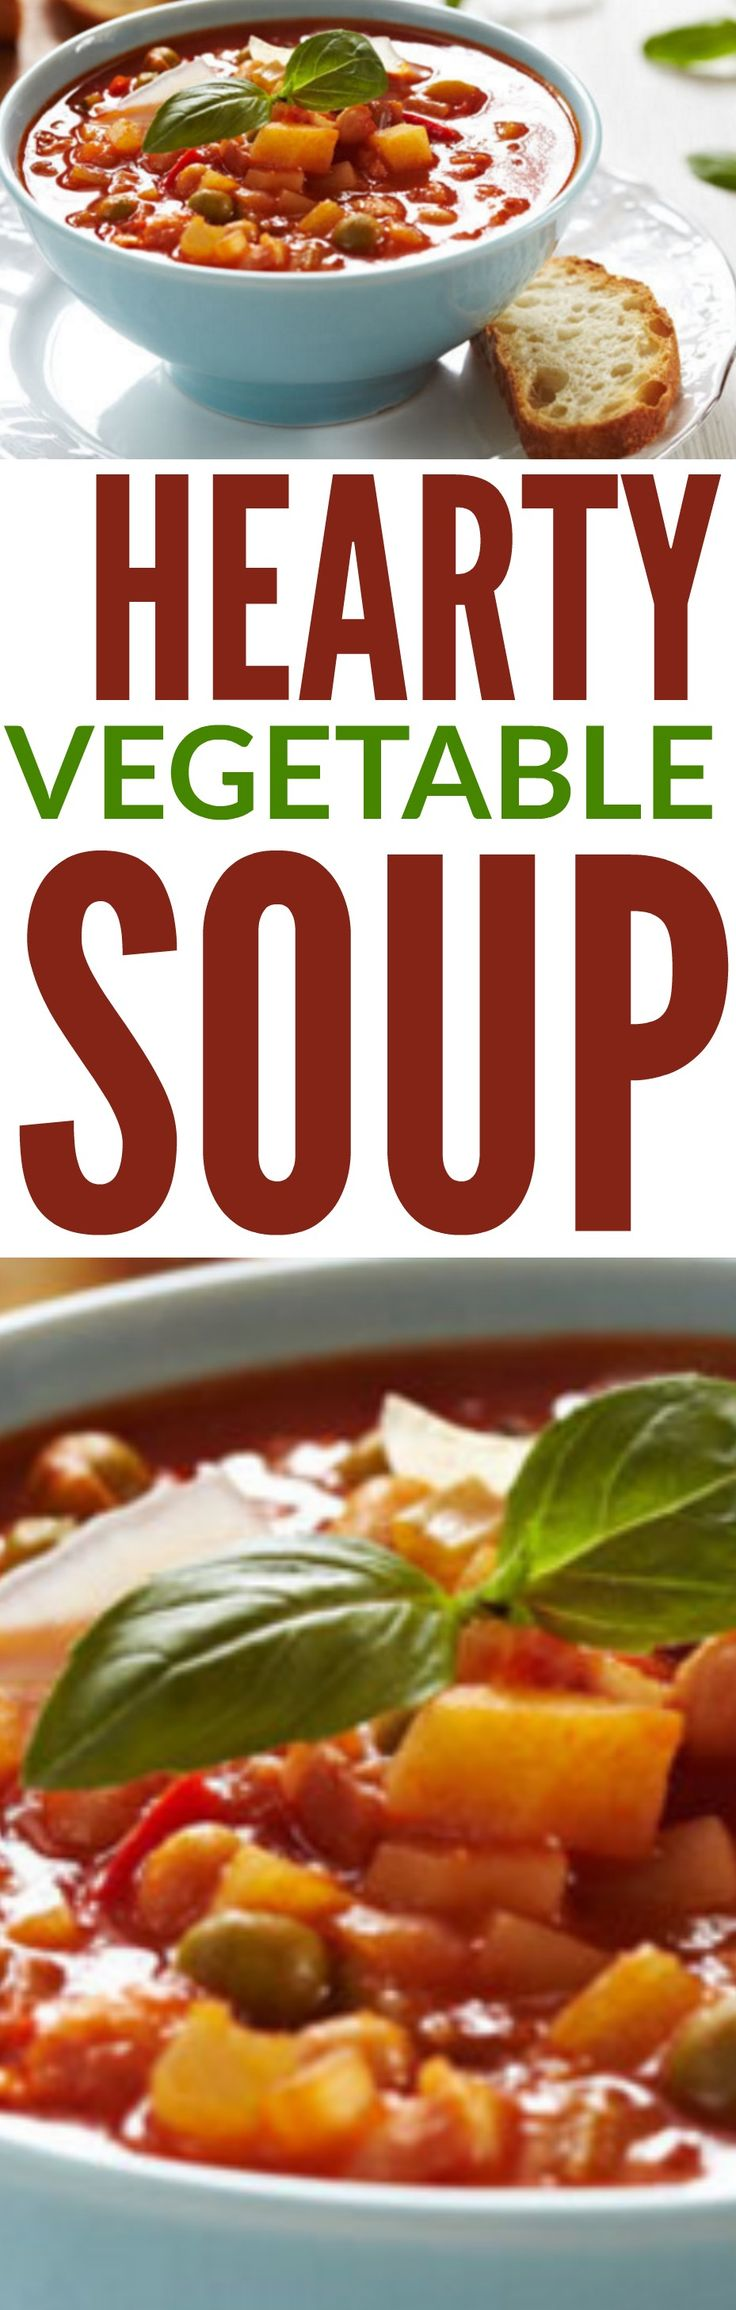 Vegetable Soup - Hearty Vegetable Soup #soup #vegetablesoup #healthysoup #healthyvegetablesoup #souprecipe #healthysouprecipe #cleaneatingsoup #cleaneating #eatclean #cleaneatingvegetablesoup